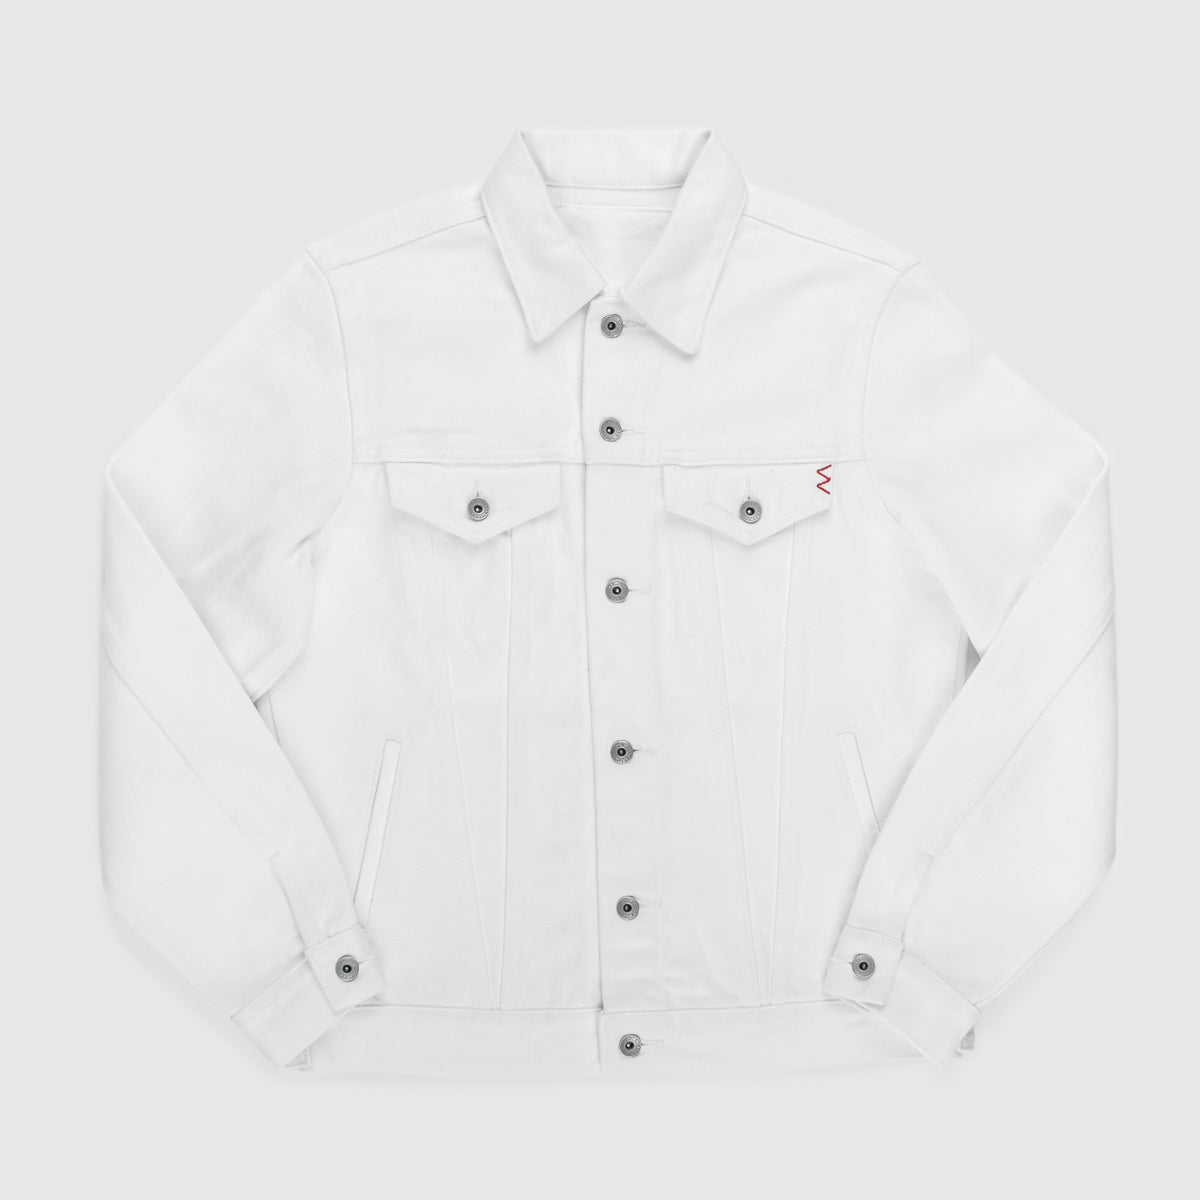 IH-526J - 21oz Selvedge Denim Modified Type III Jacket - White